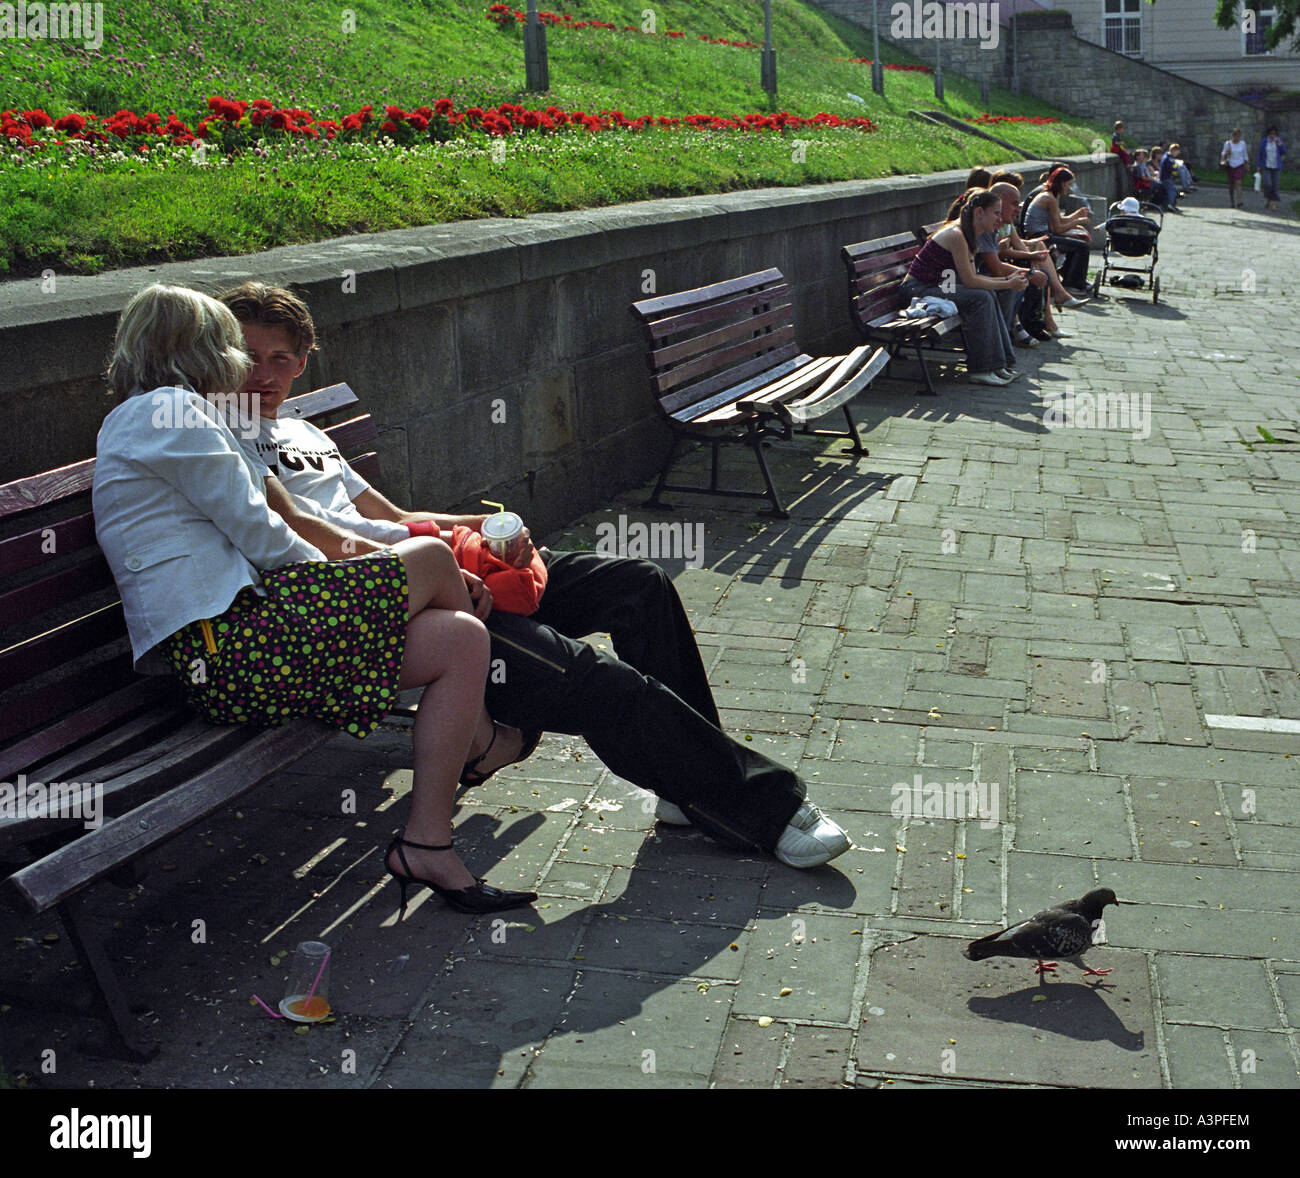 People sitting on benches in Przemysl, Poland Stock Photo